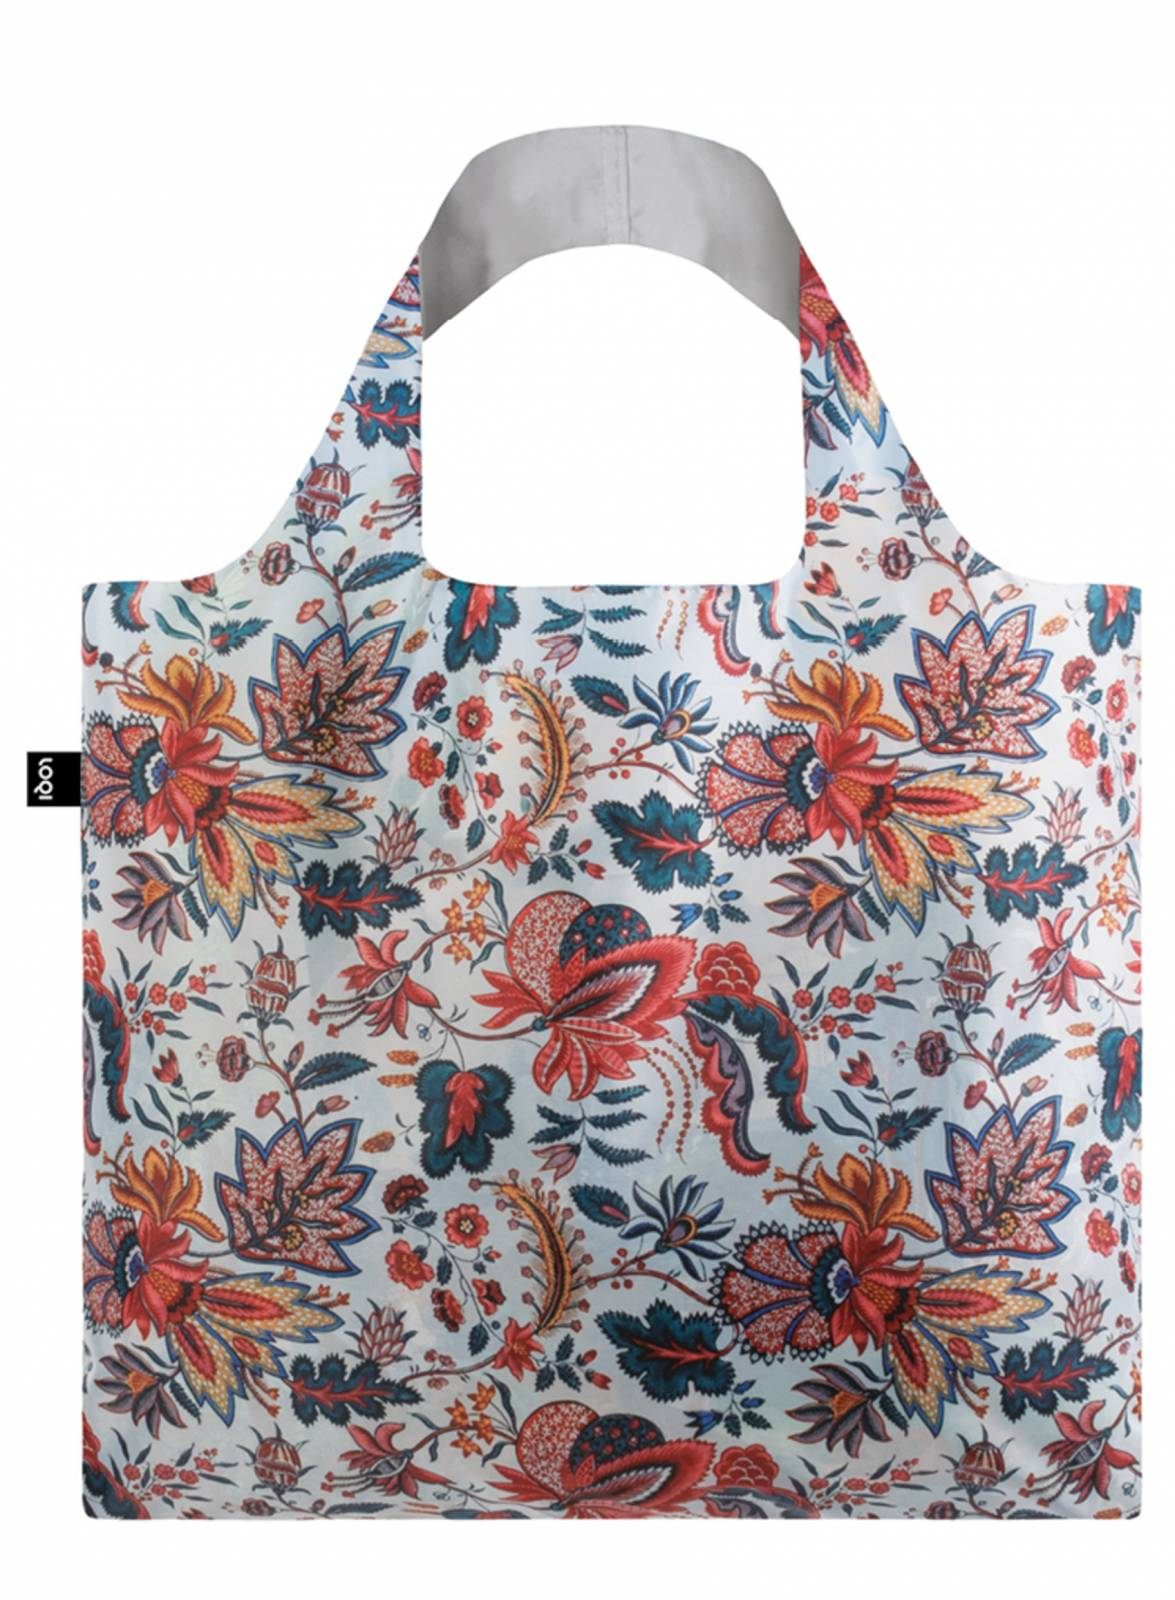 Indian Decor - Reusable Tote Bag With Pouch thumbnails